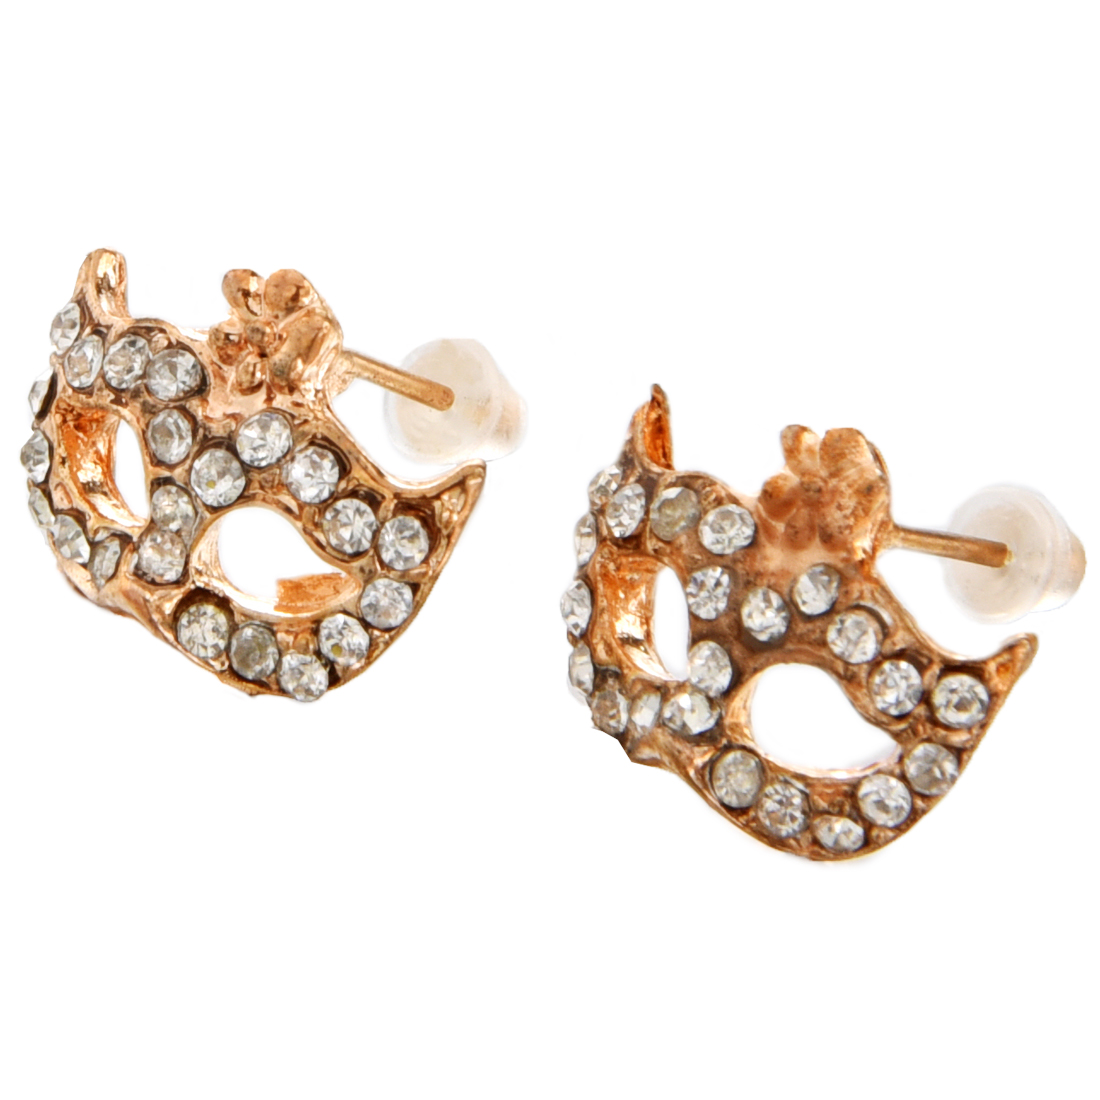 HGHO-1 Pair of Gold Plated Crystal Rhinestone Party Mask Ear Stud